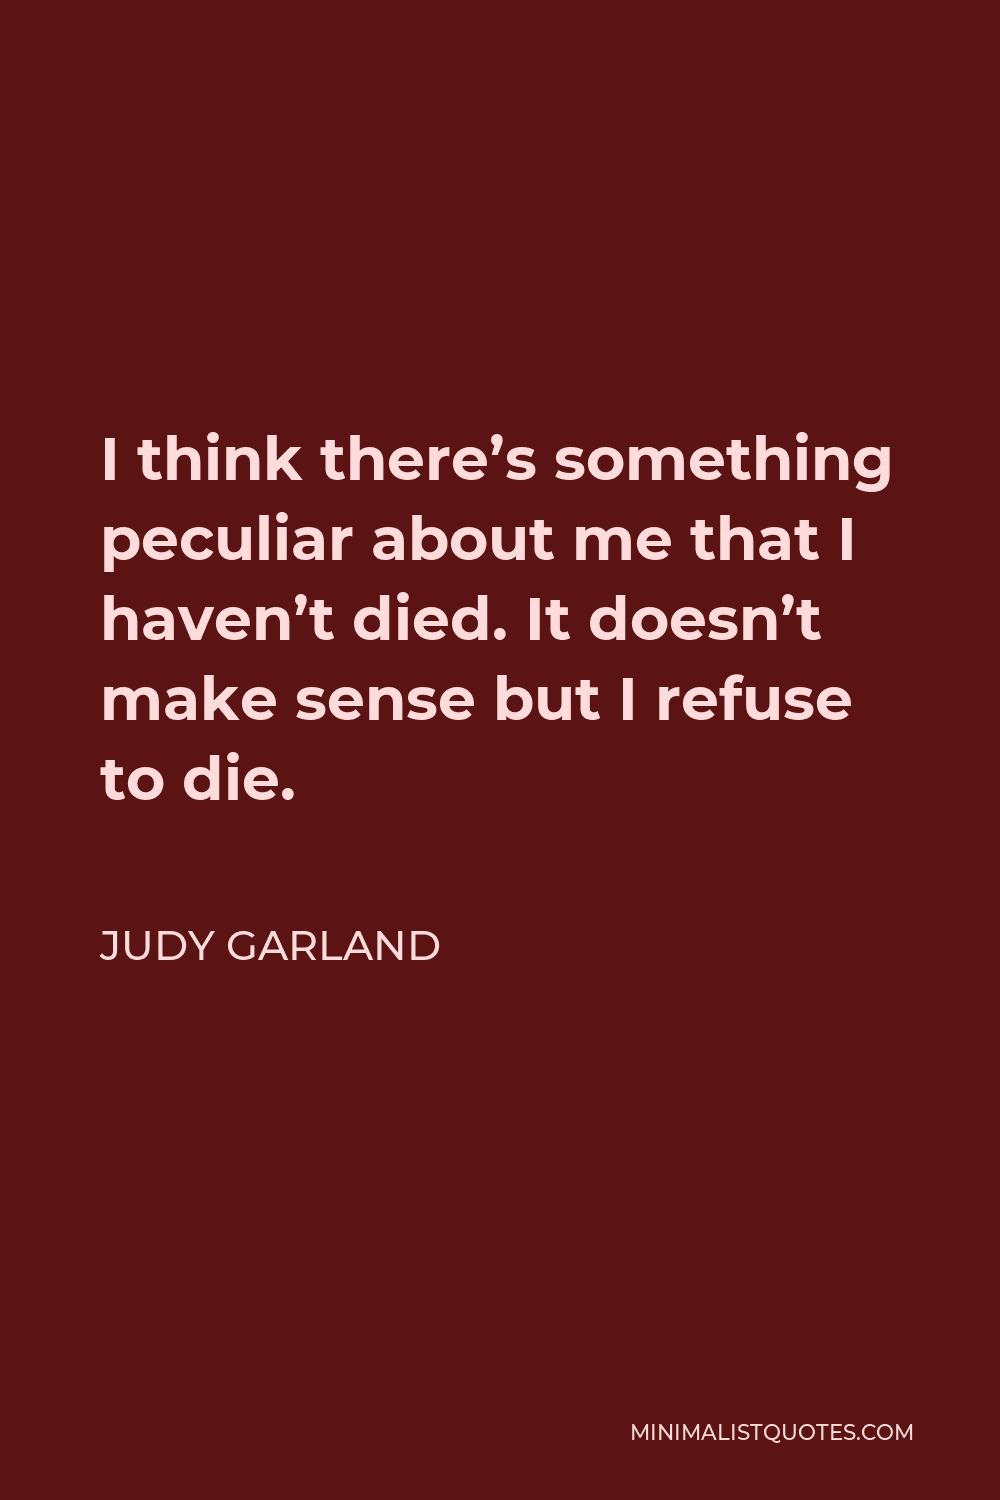 Judy Garland Quote - I think there's something peculiar about me that I haven't died. It doesn't make sense but I refuse to die.